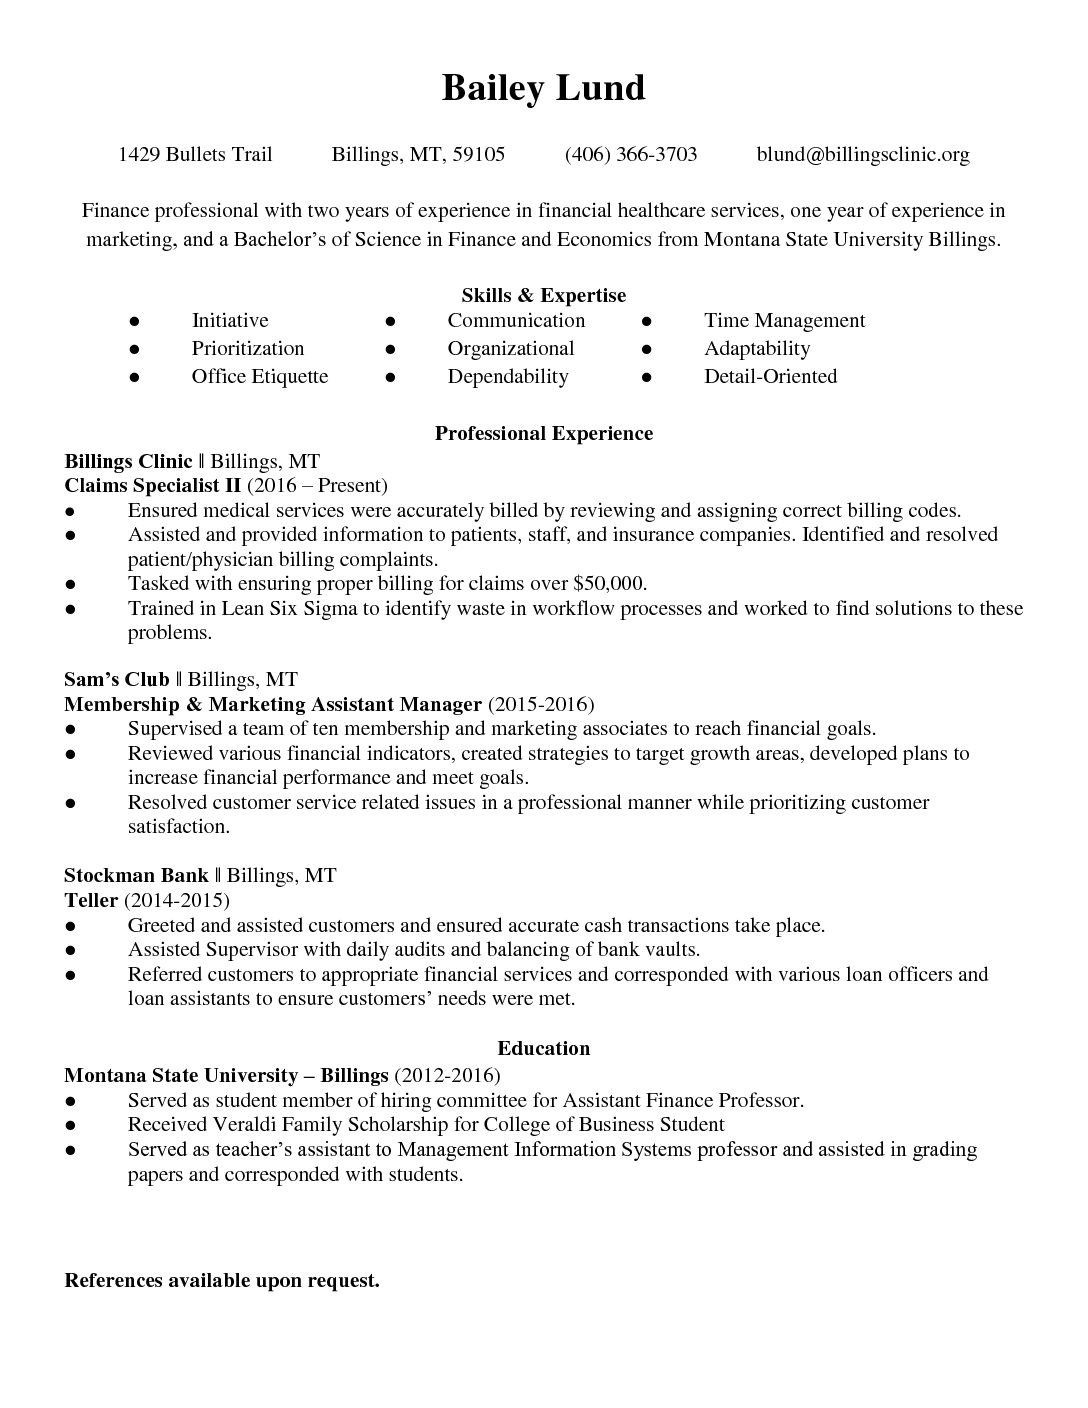 RESUME2018 - Central Montana Medical Center